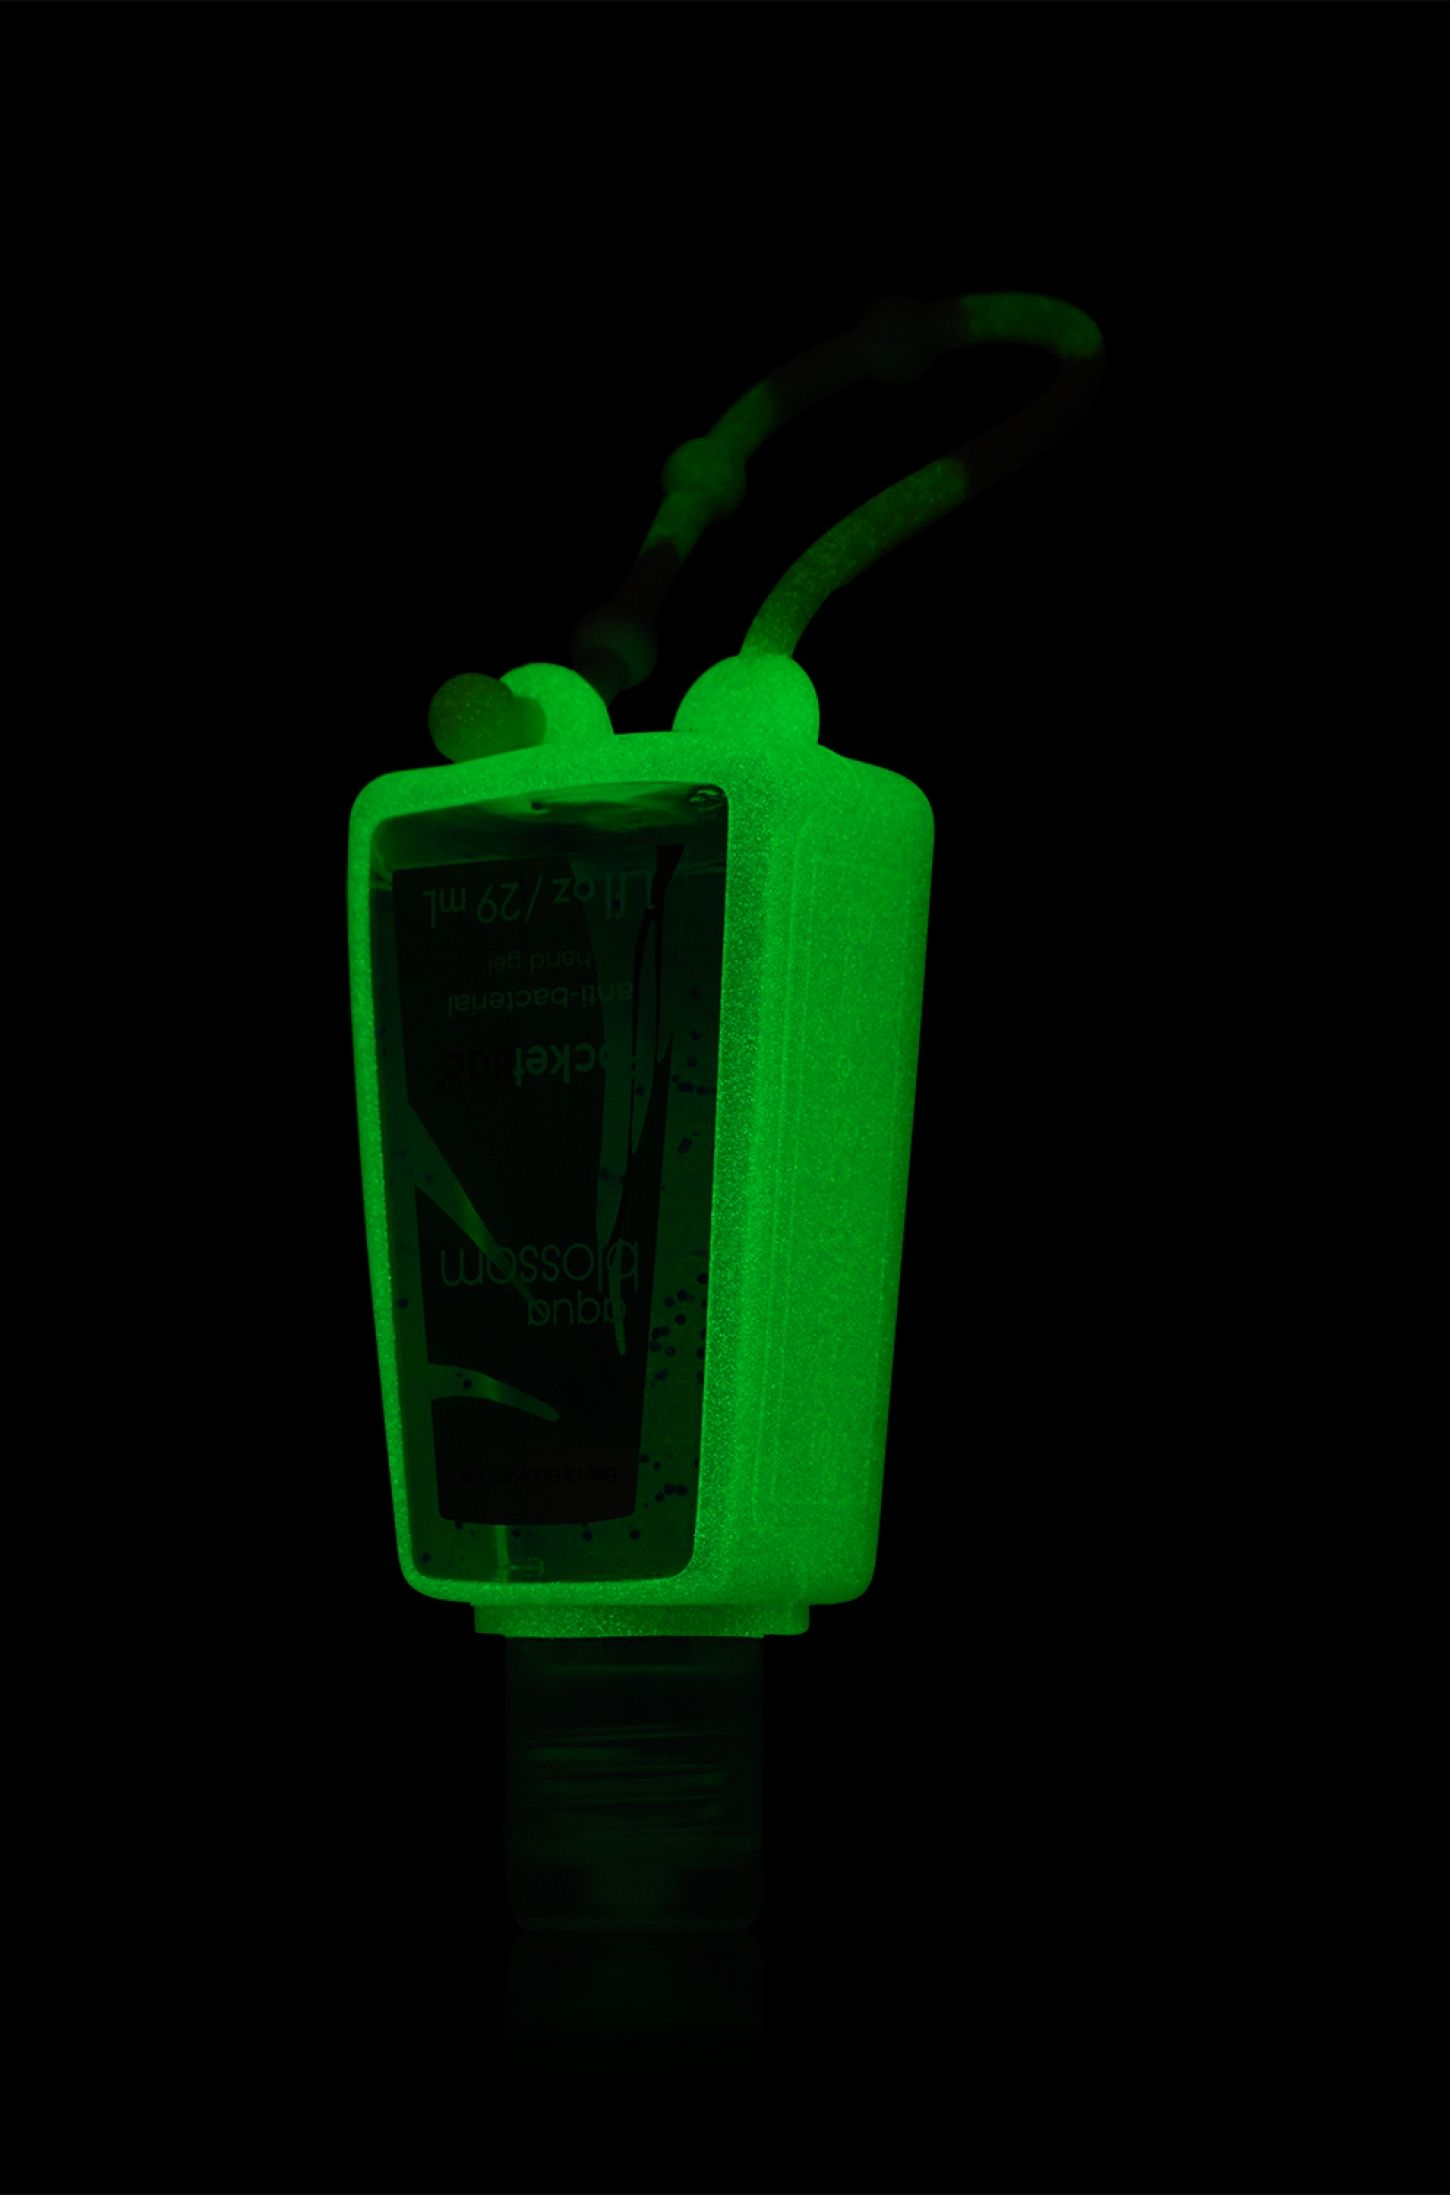 Turquoise Glow In The Dark Pocketbac Holder Bath Body Works